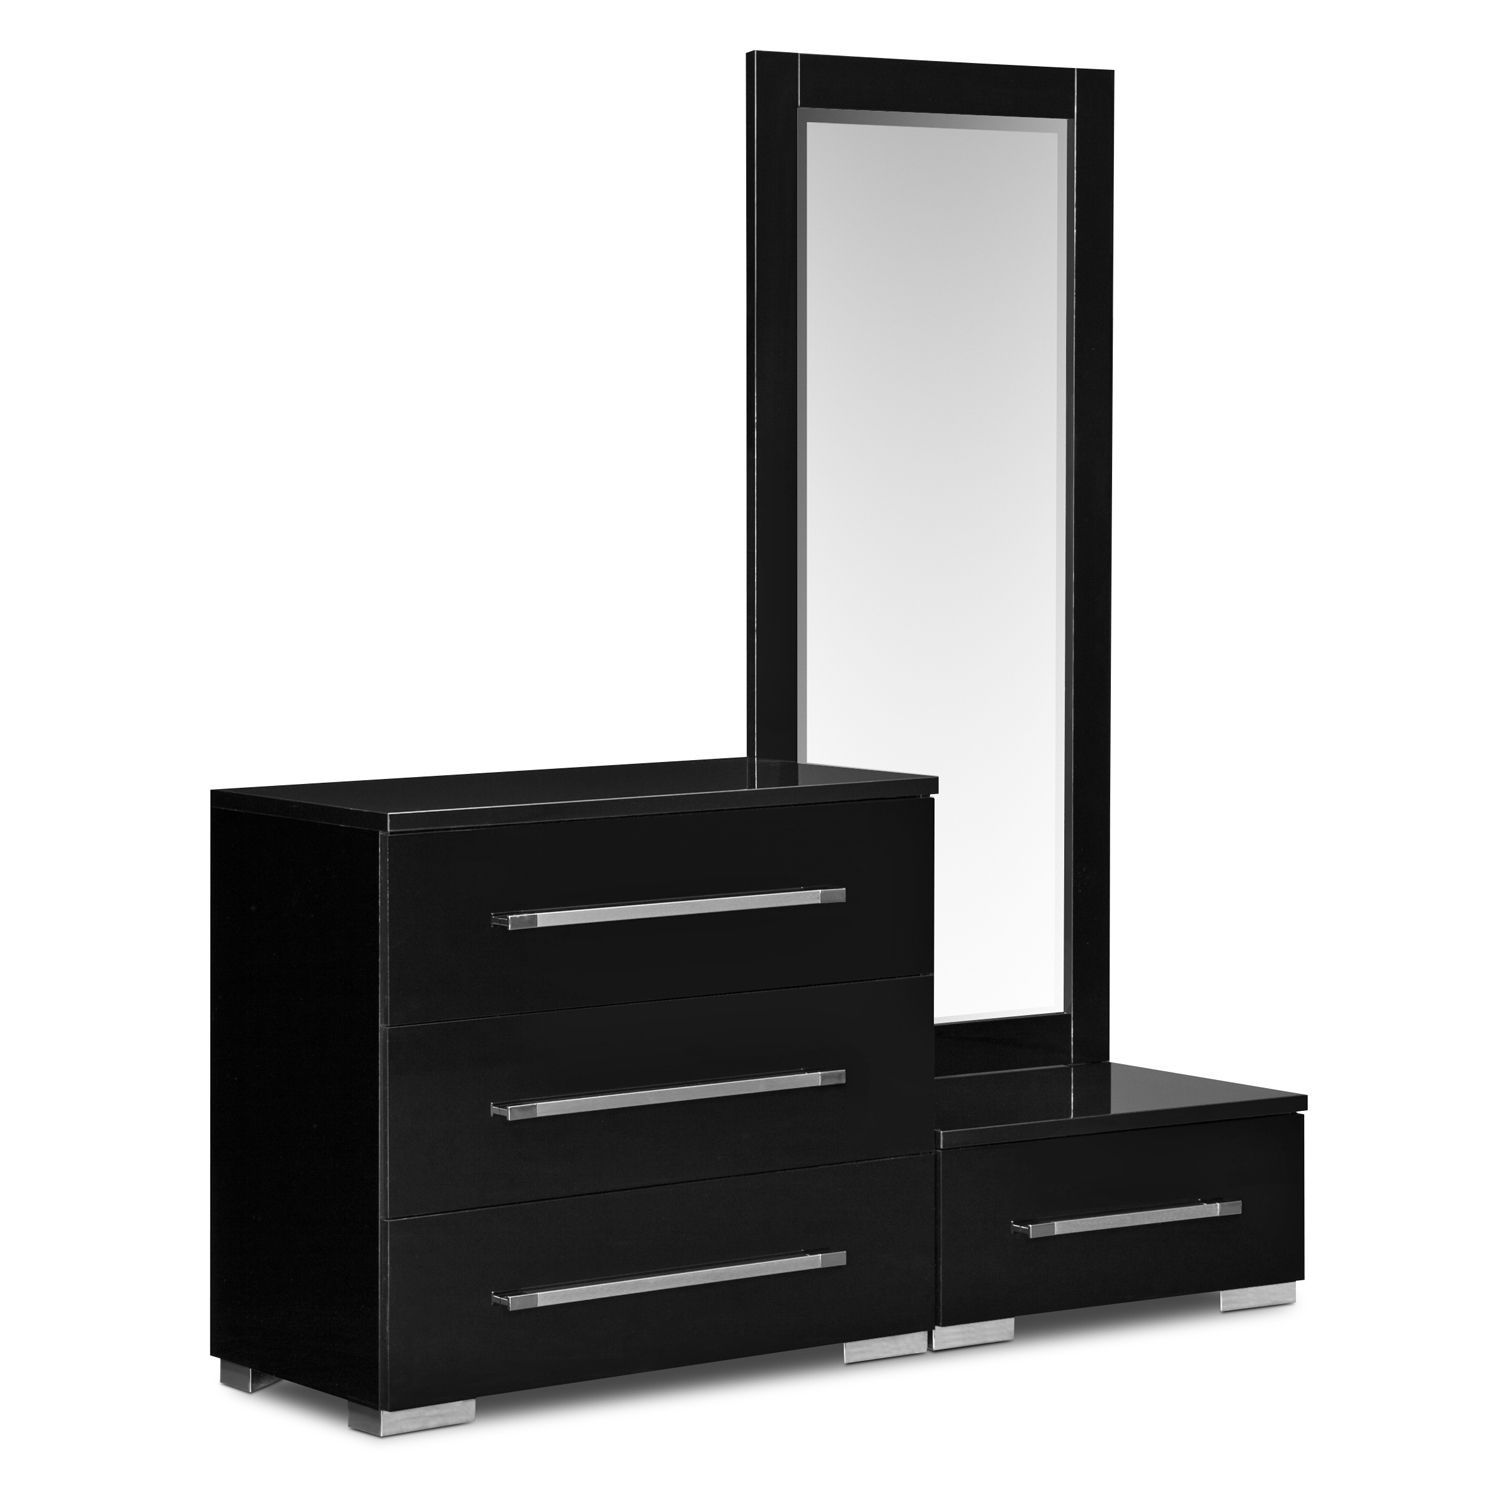 27+ Bedroom table mirror price cpns 2021